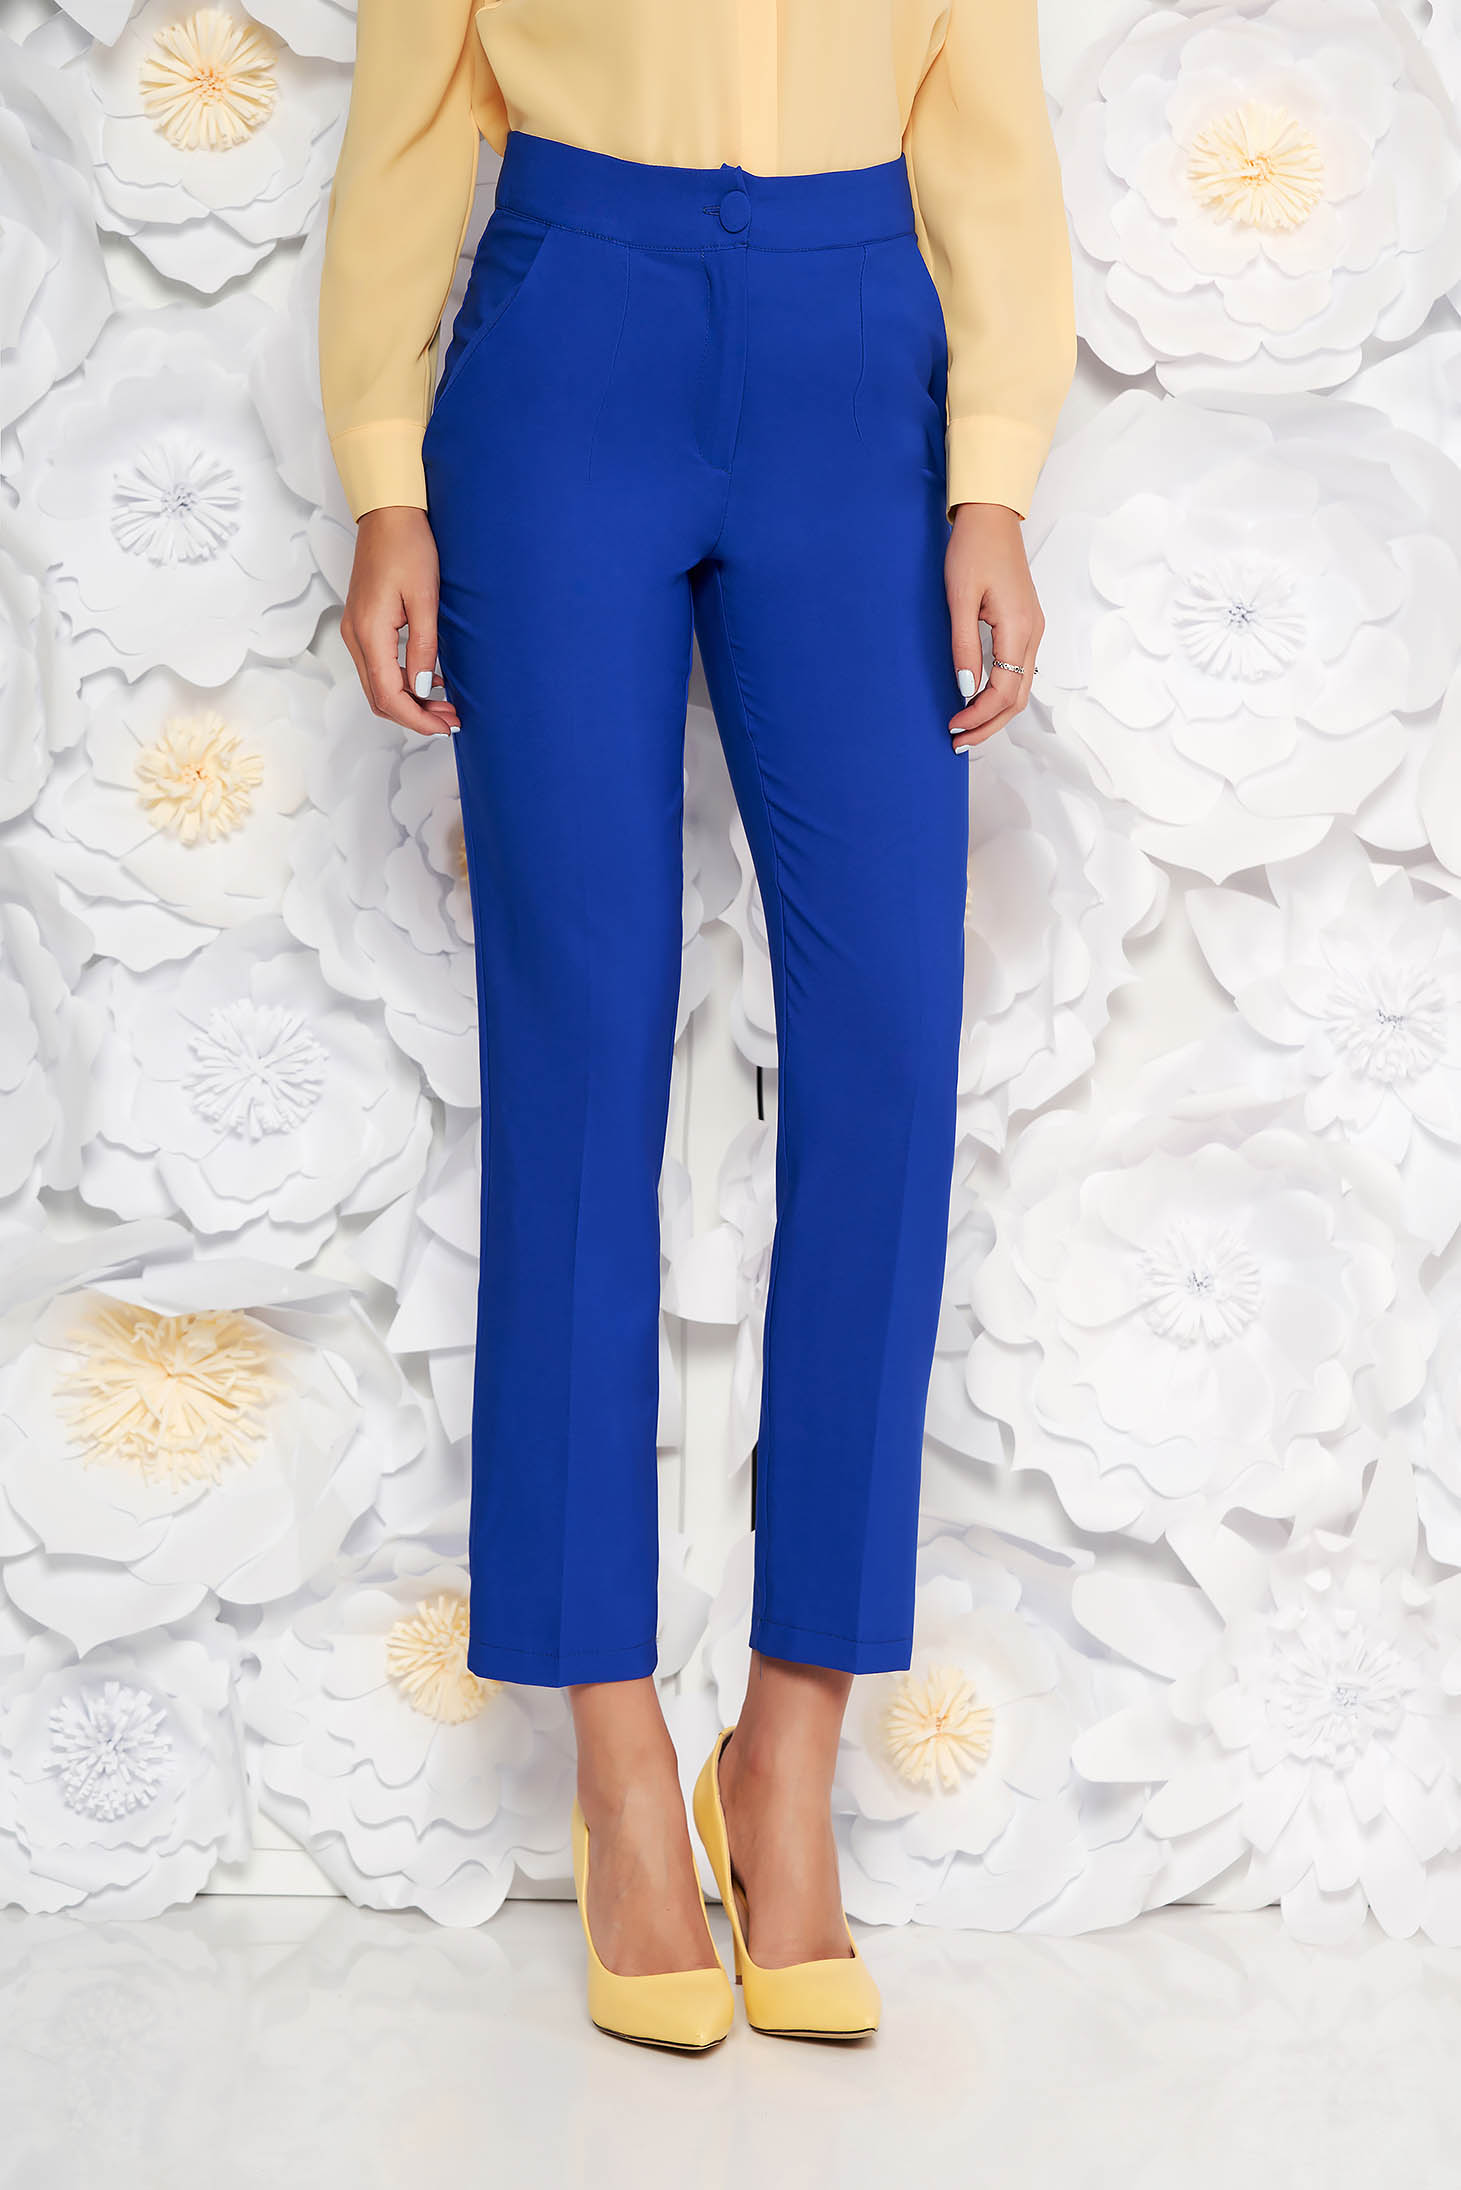 Artista blue office trousers with pockets with medium waist slightly elastic fabric with straight cut